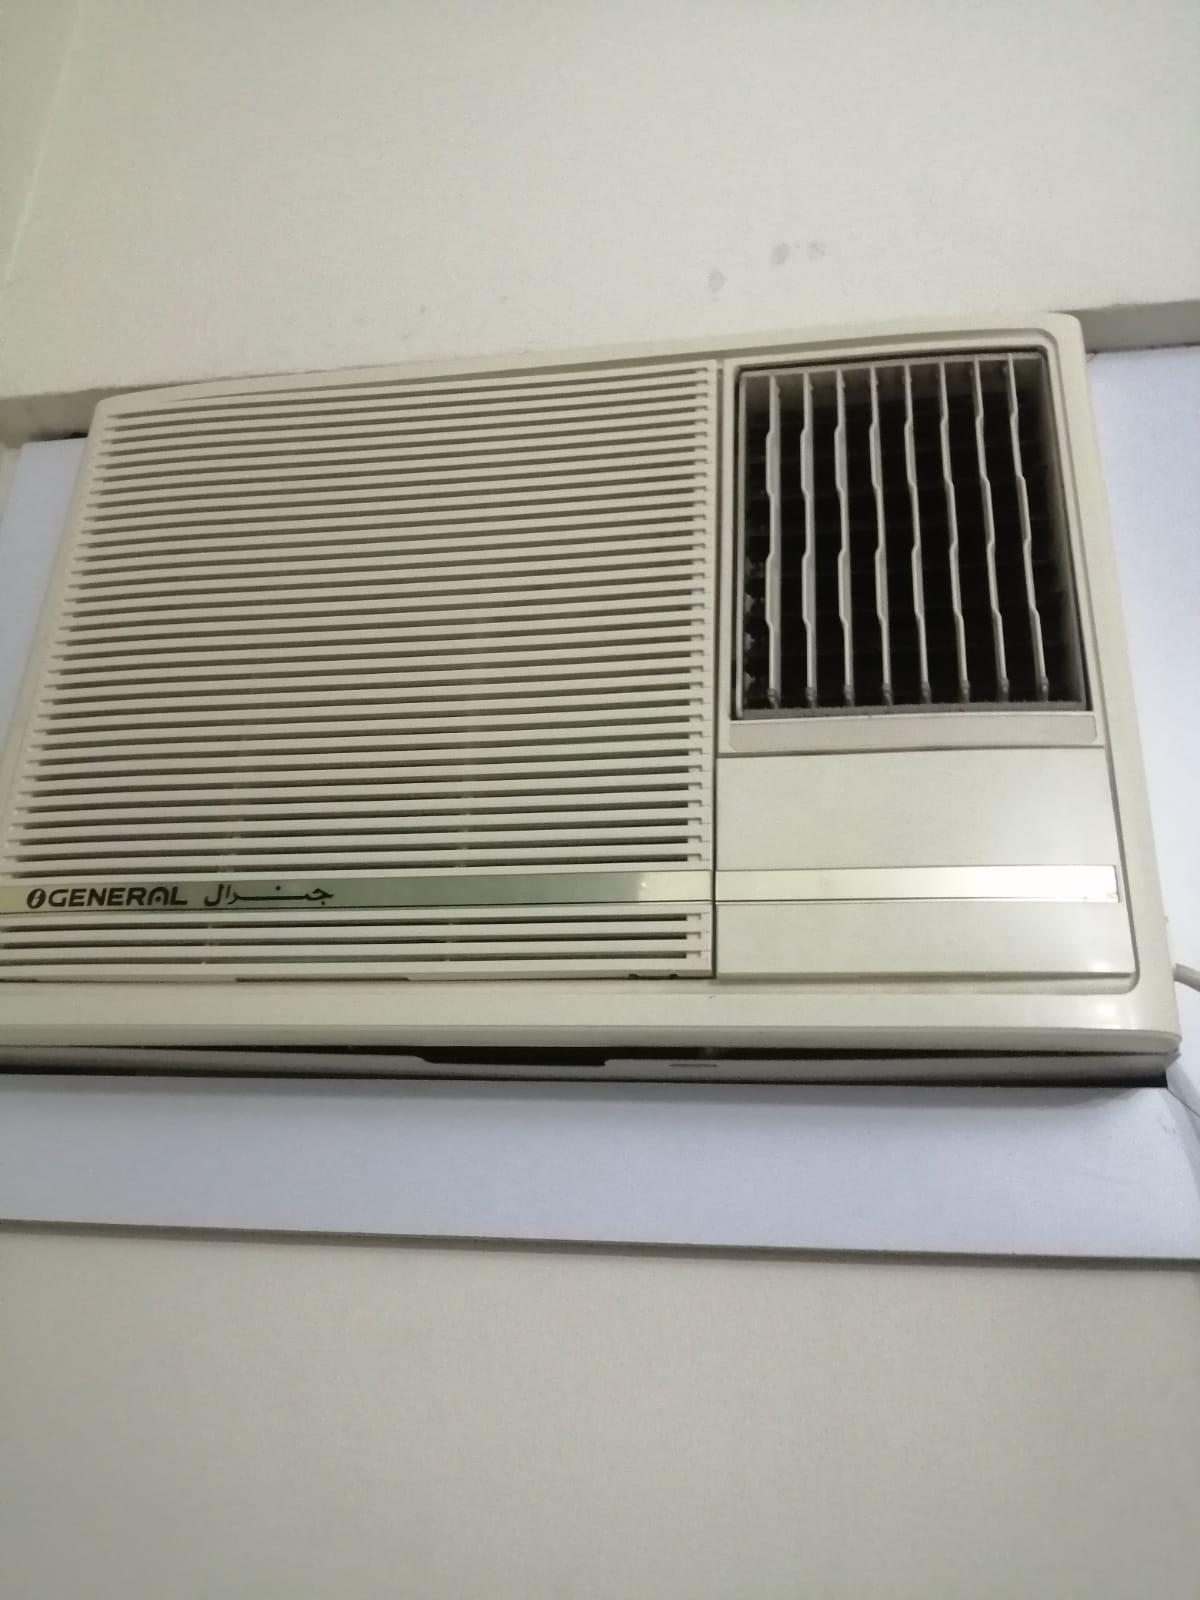 Buying and selling Ac. Please call 31024376